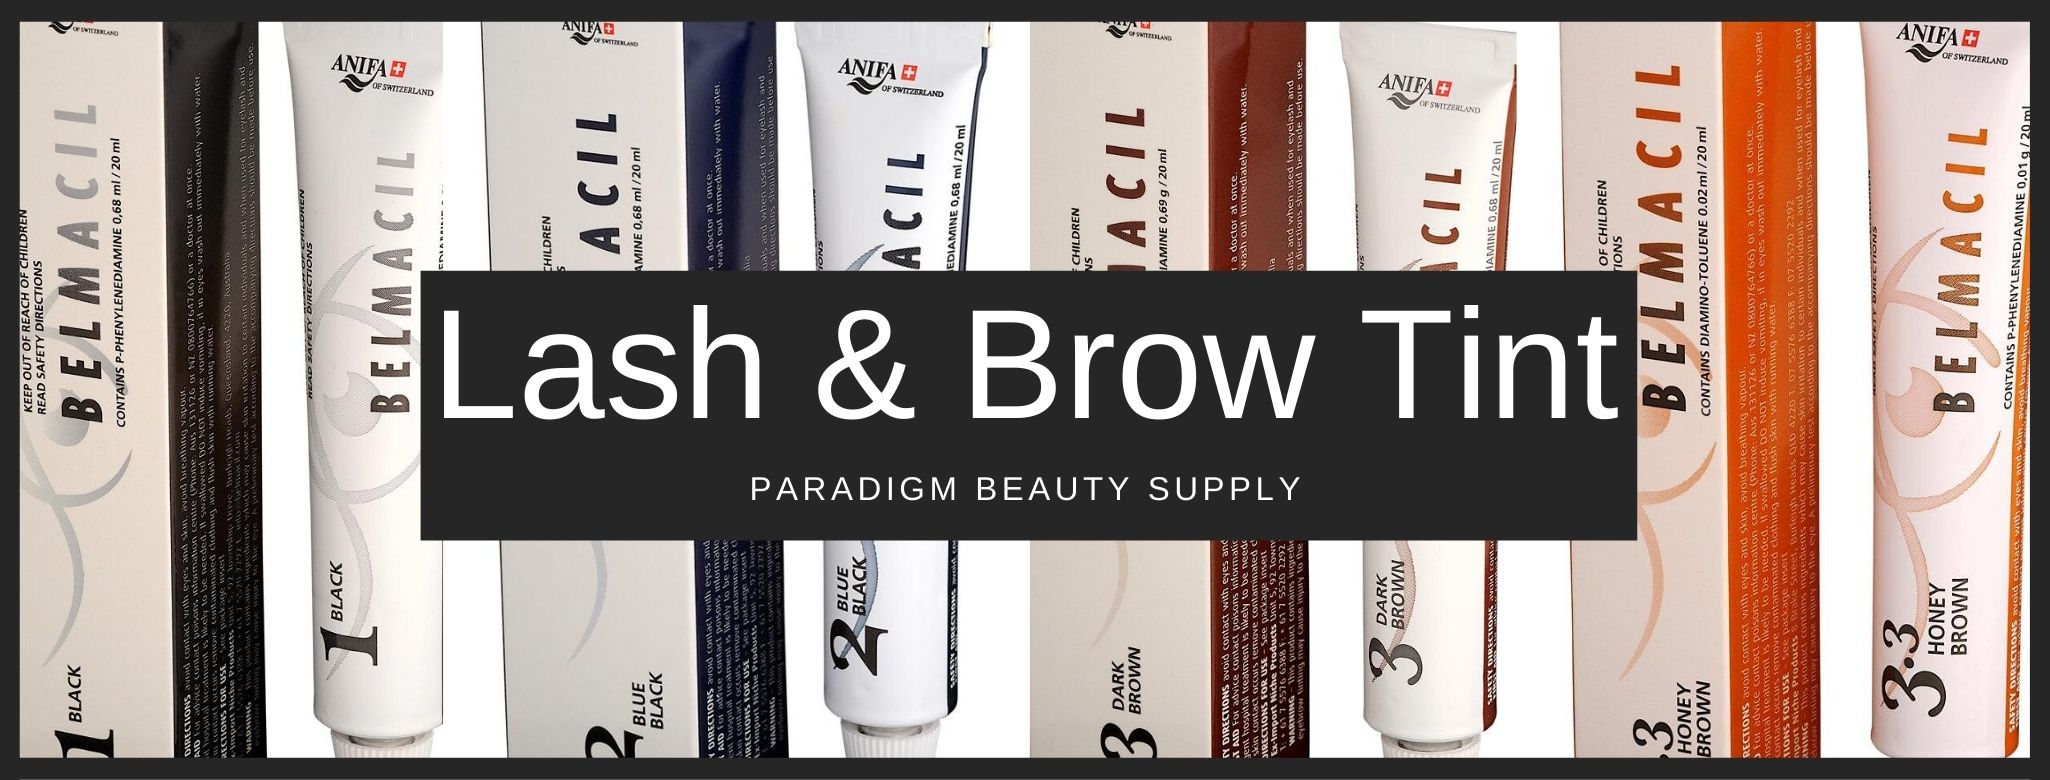 Lash and Brow Tint Products